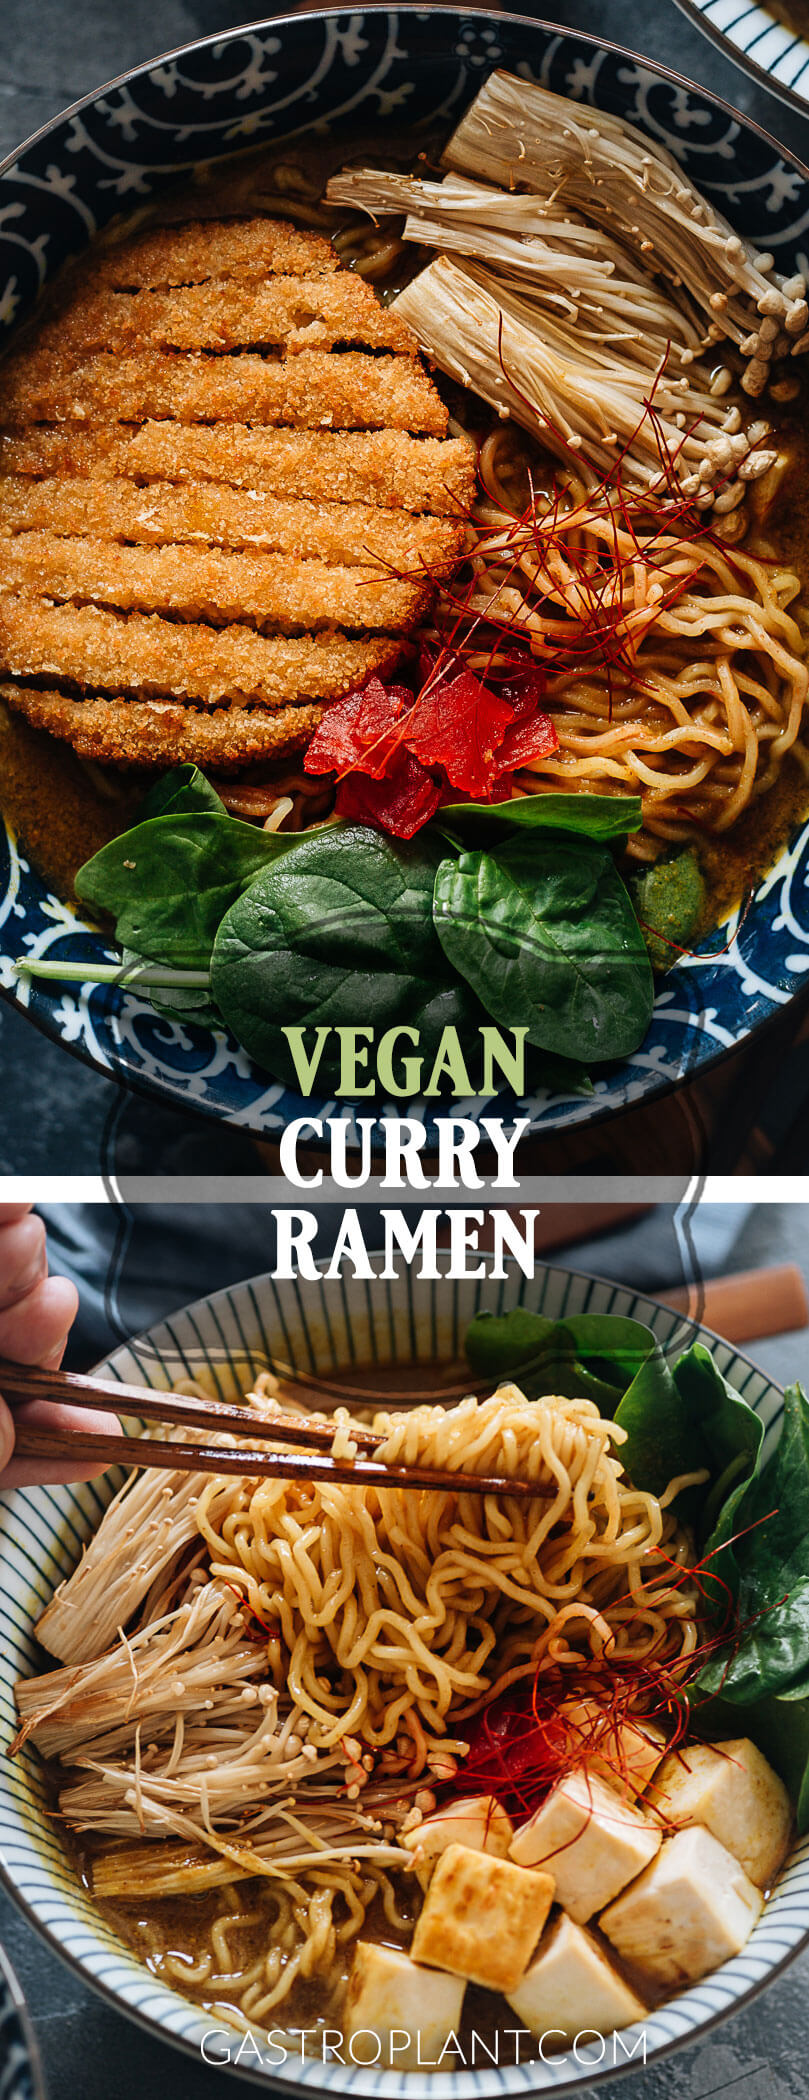 Vegan curry ramen collage